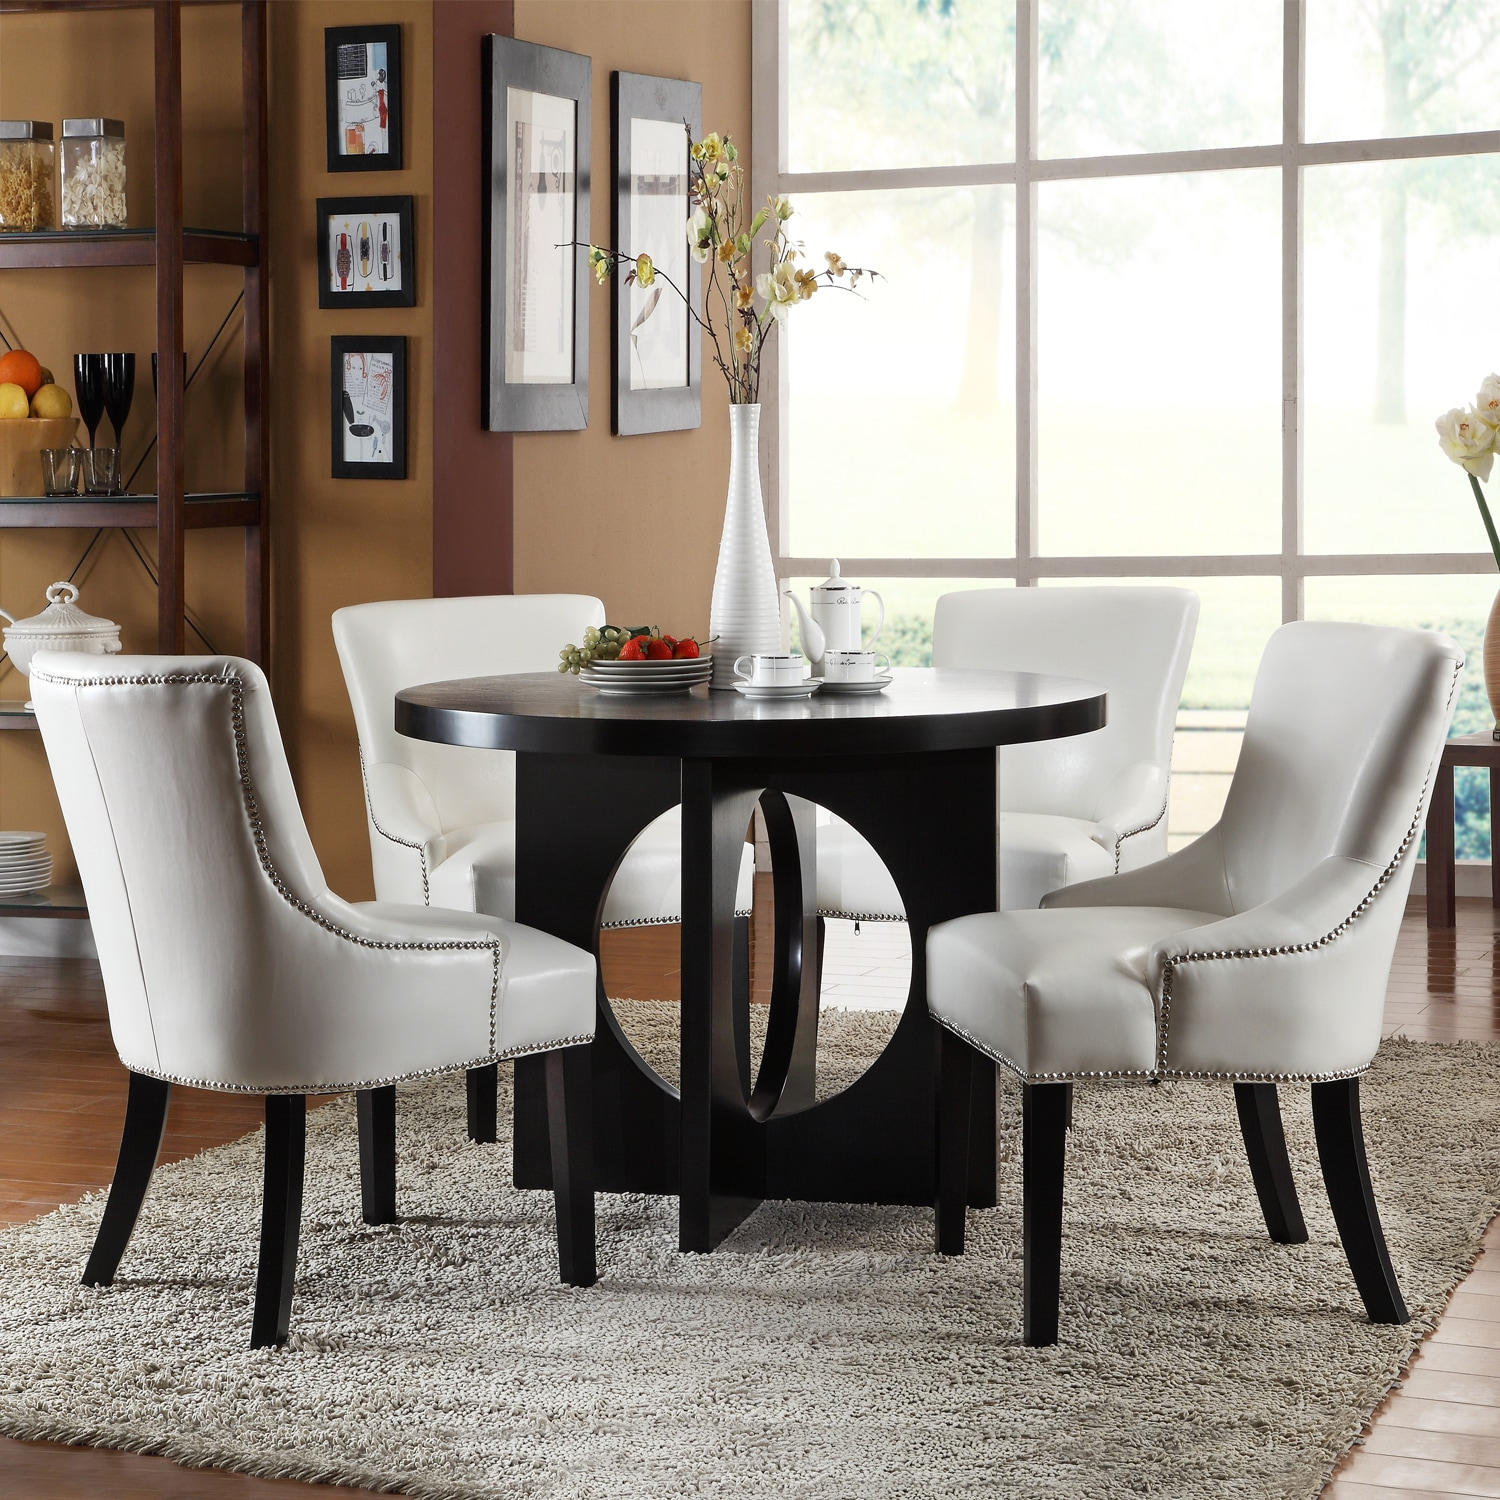 White Leather Dining Room Set: Westmont 5-piece White Faux Leather Dining Set